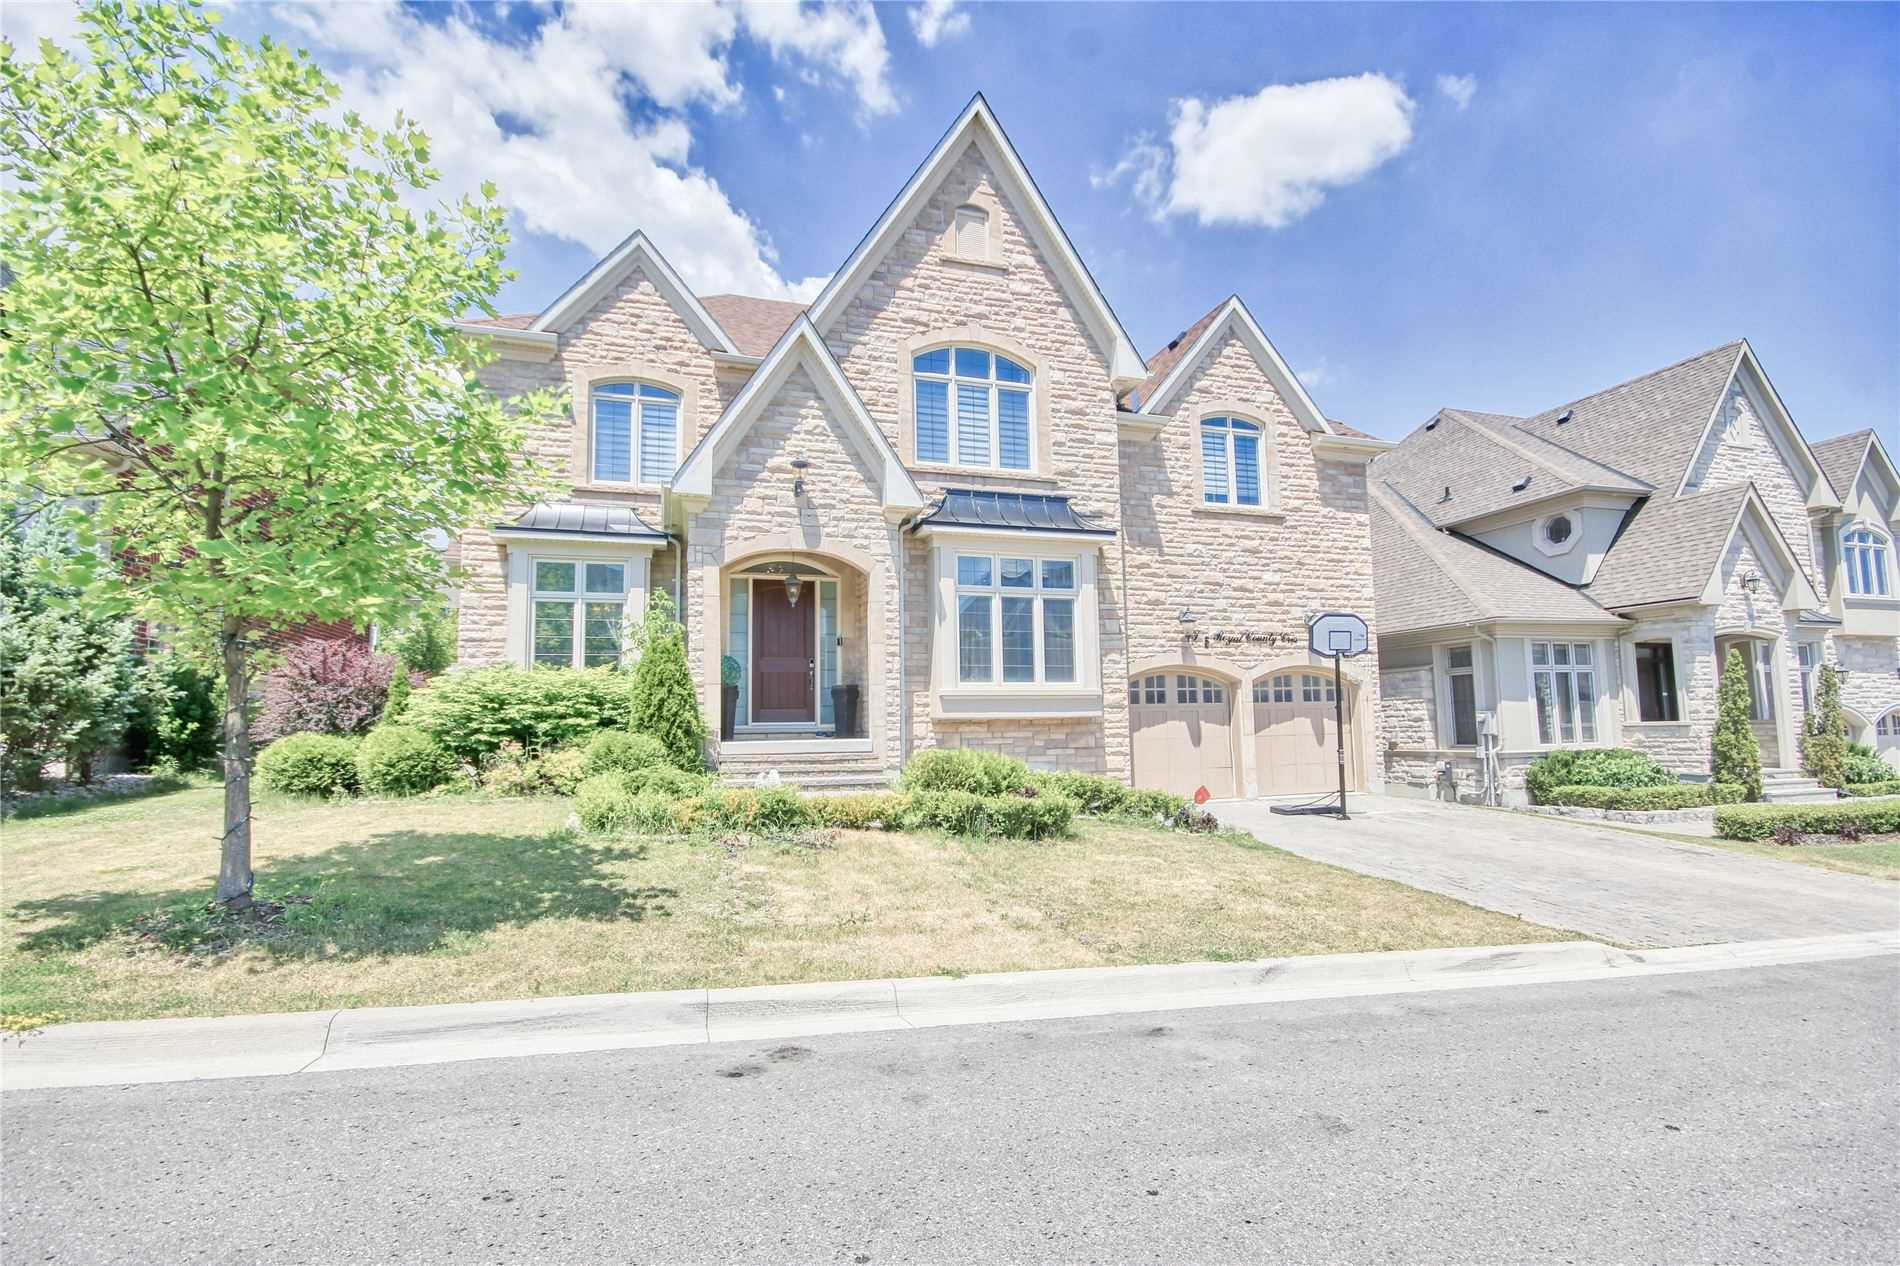 10 Royal County Down Cres, Markham, Ontario L6C0K1, 4 Bedrooms Bedrooms, 12 Rooms Rooms,6 BathroomsBathrooms,Detached,For Sale,Royal County Down,N4802868